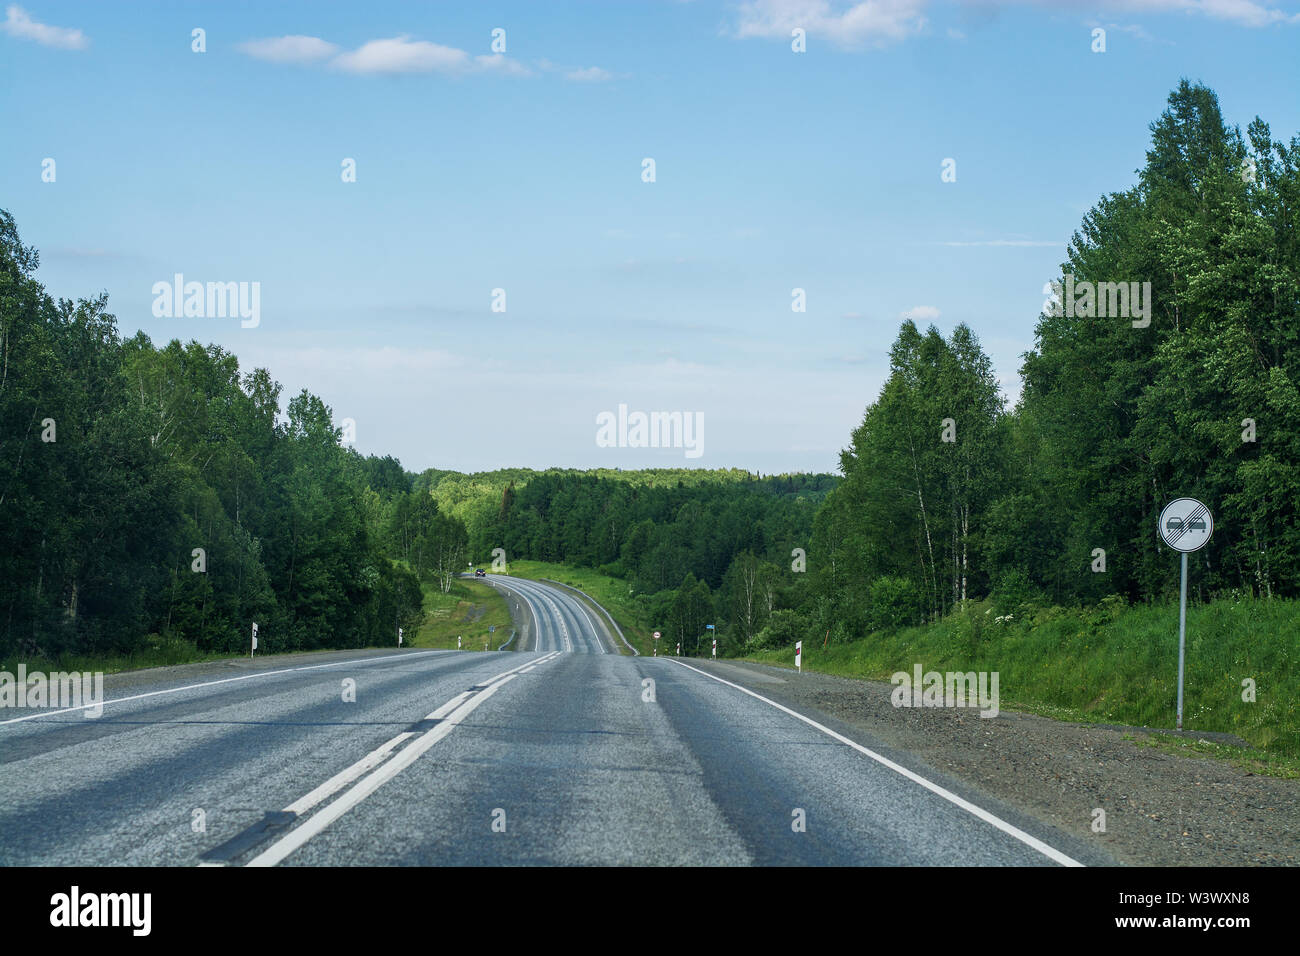 Asphalt road going through the forest on a summer sunny day. Around the green trees and Christmas trees. Clear blue sky - Stock Image